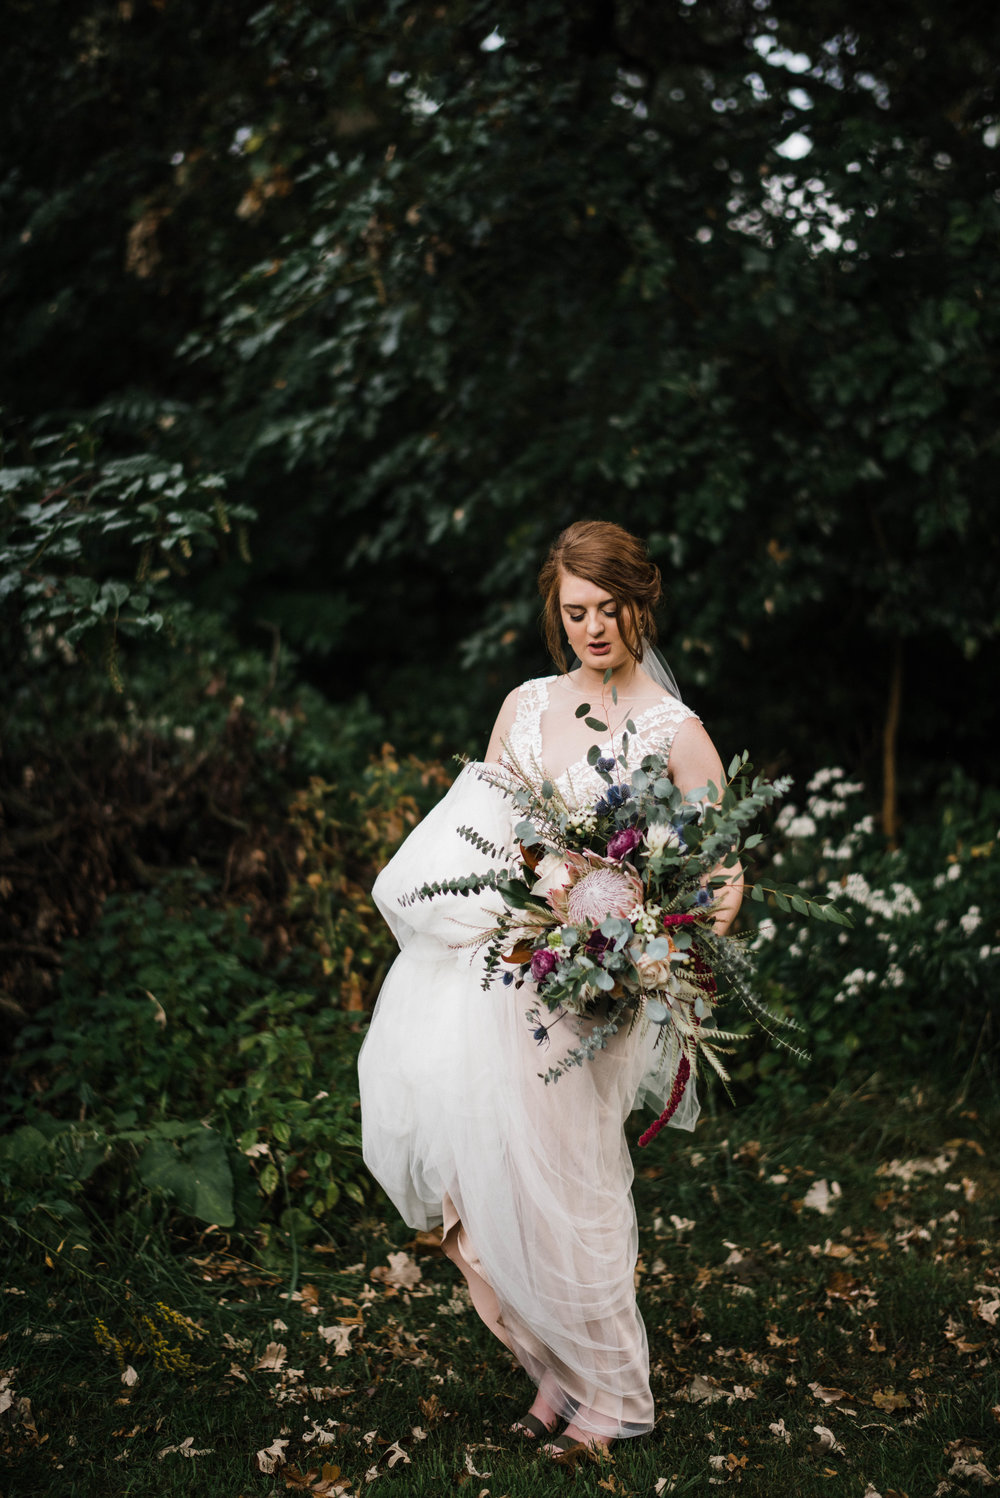 Romantic Wedding Bouquet and Bride Portrait